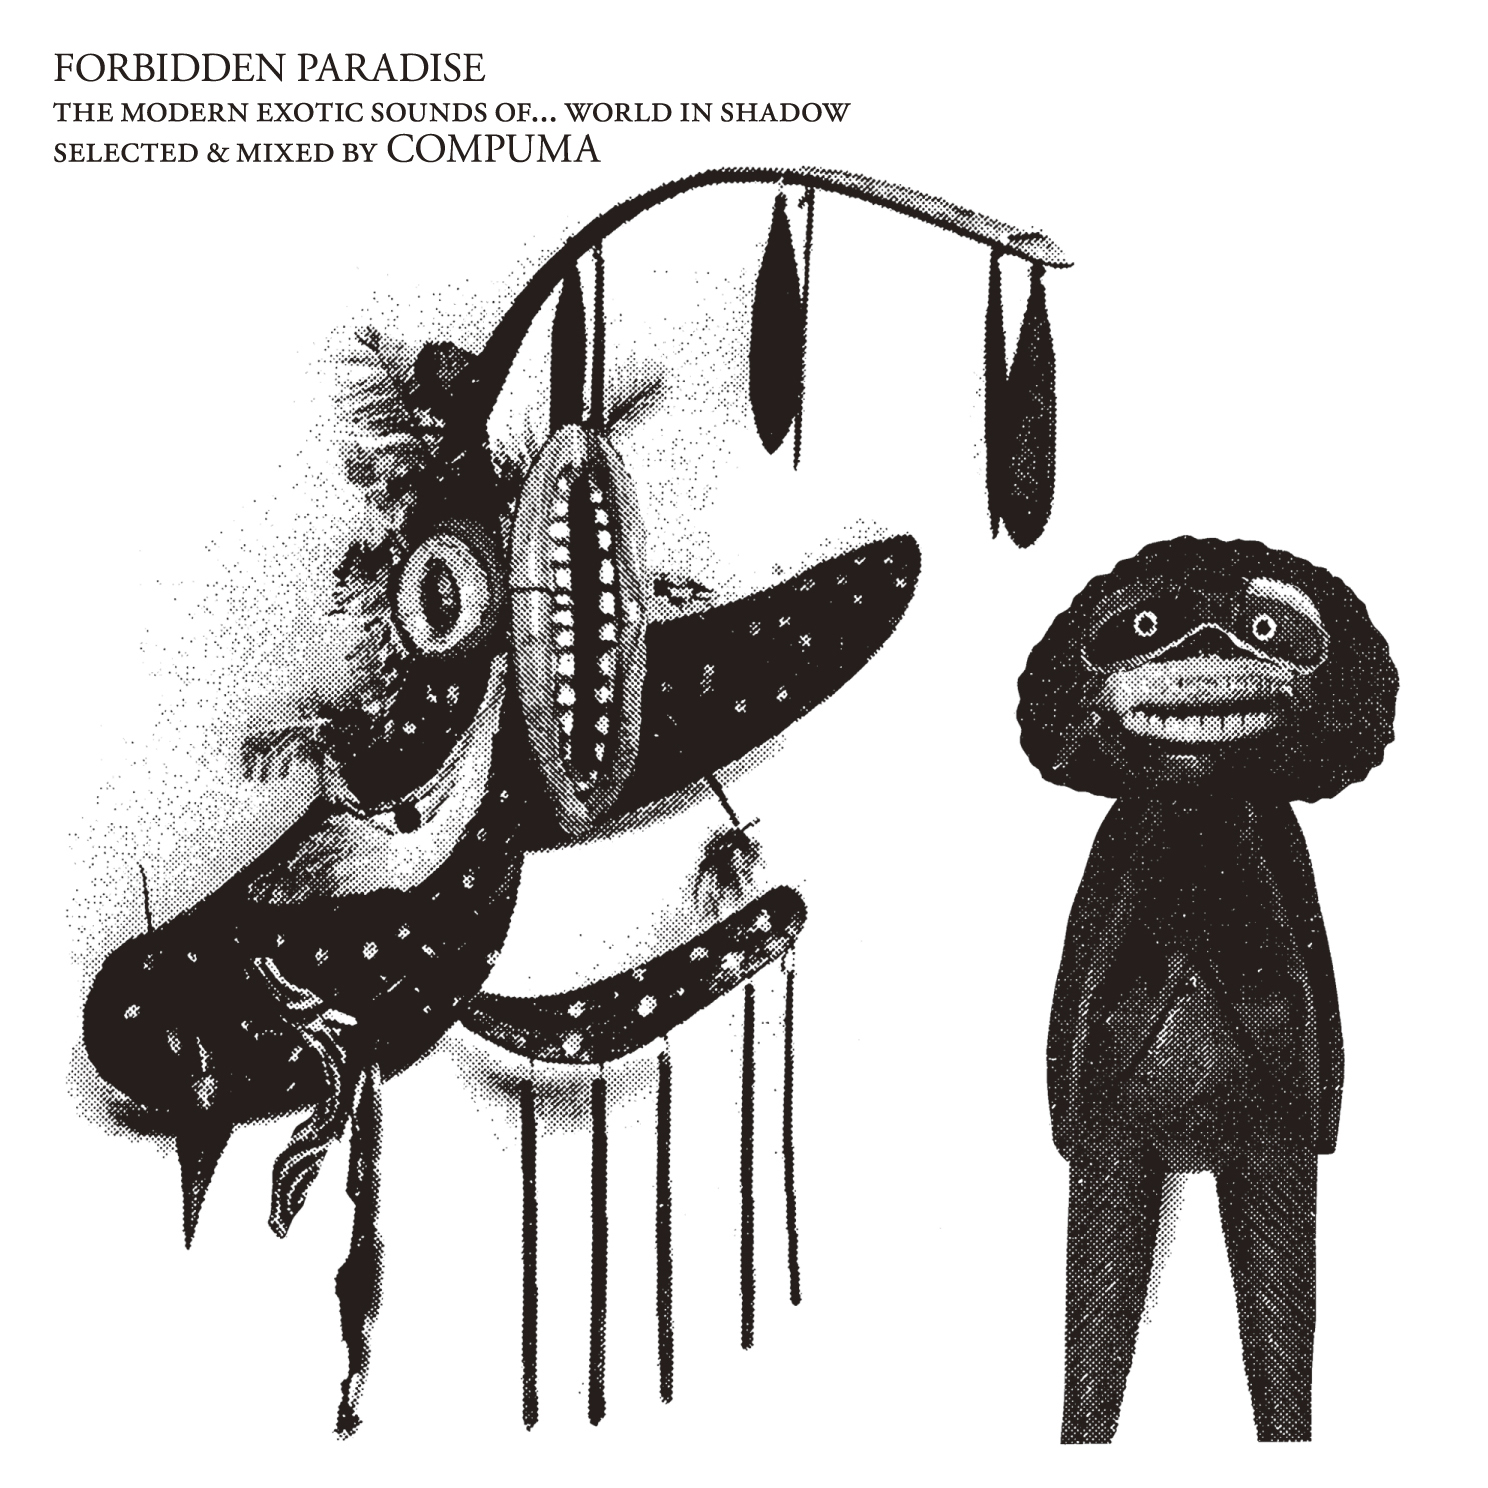 FORBIDDEN PARADISE - the modern exotic sounds of...world in shadow